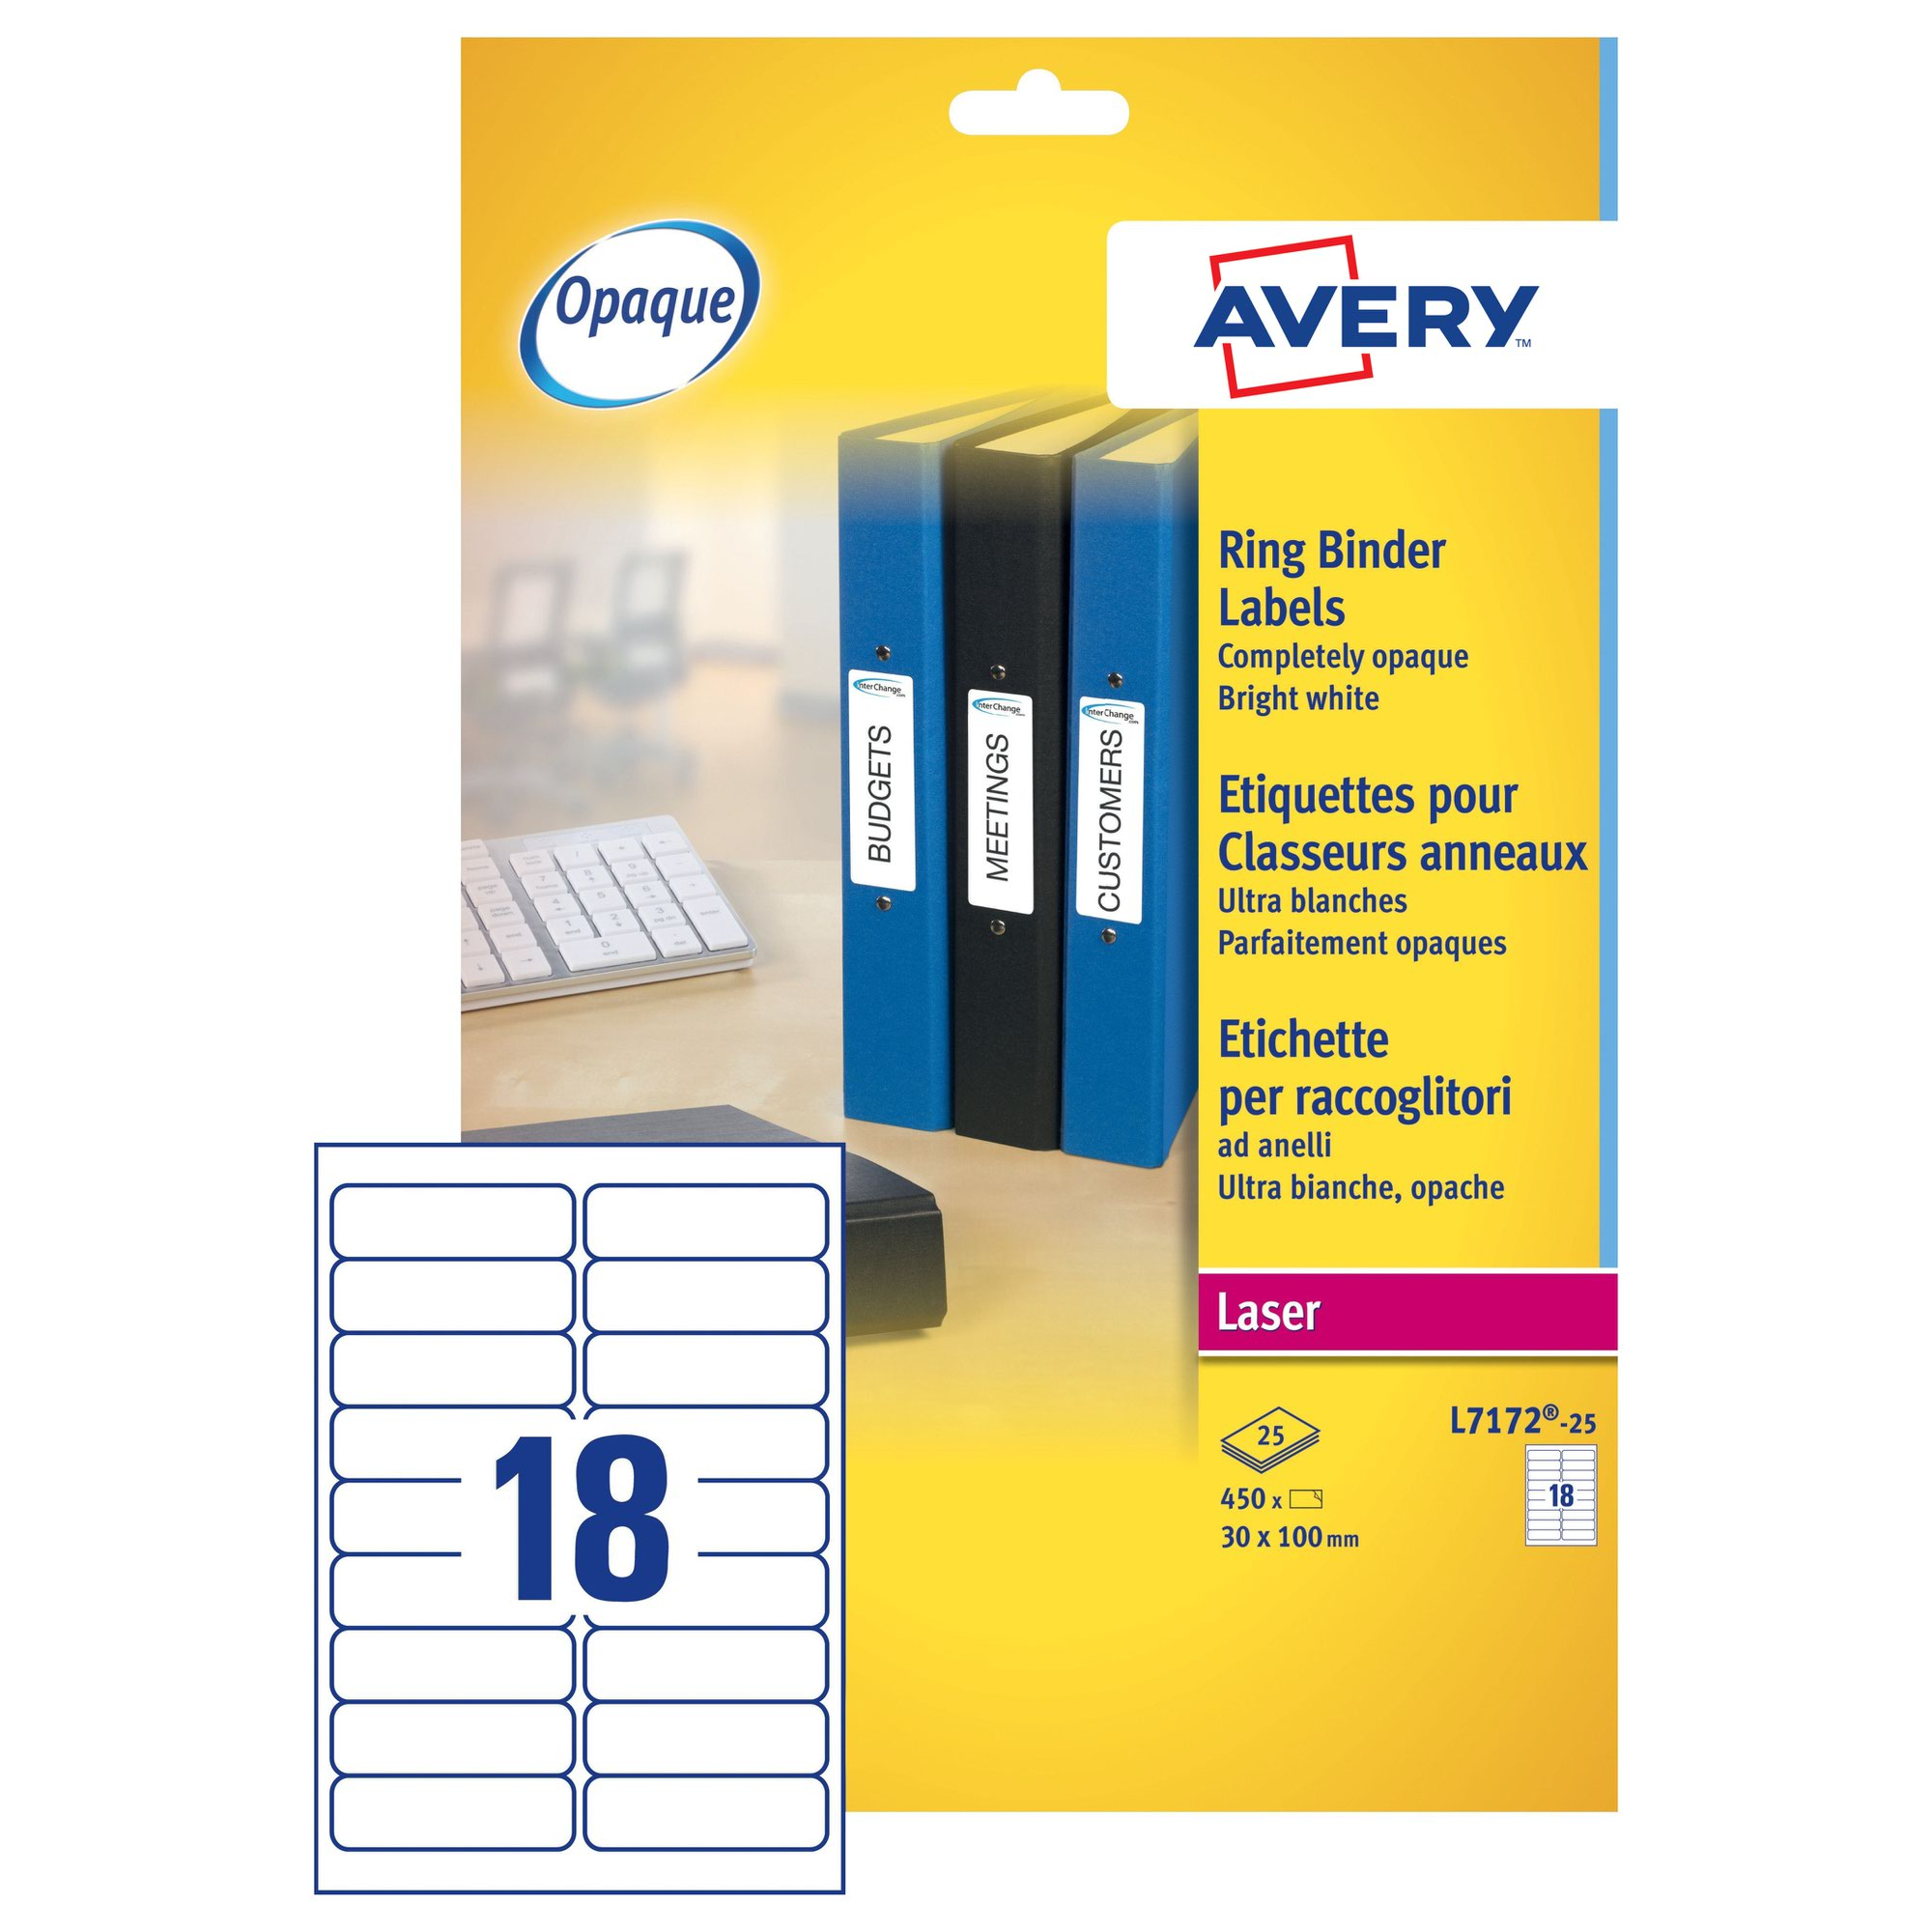 avery laser ring binder labels 100x30mm white 25 l7172 25